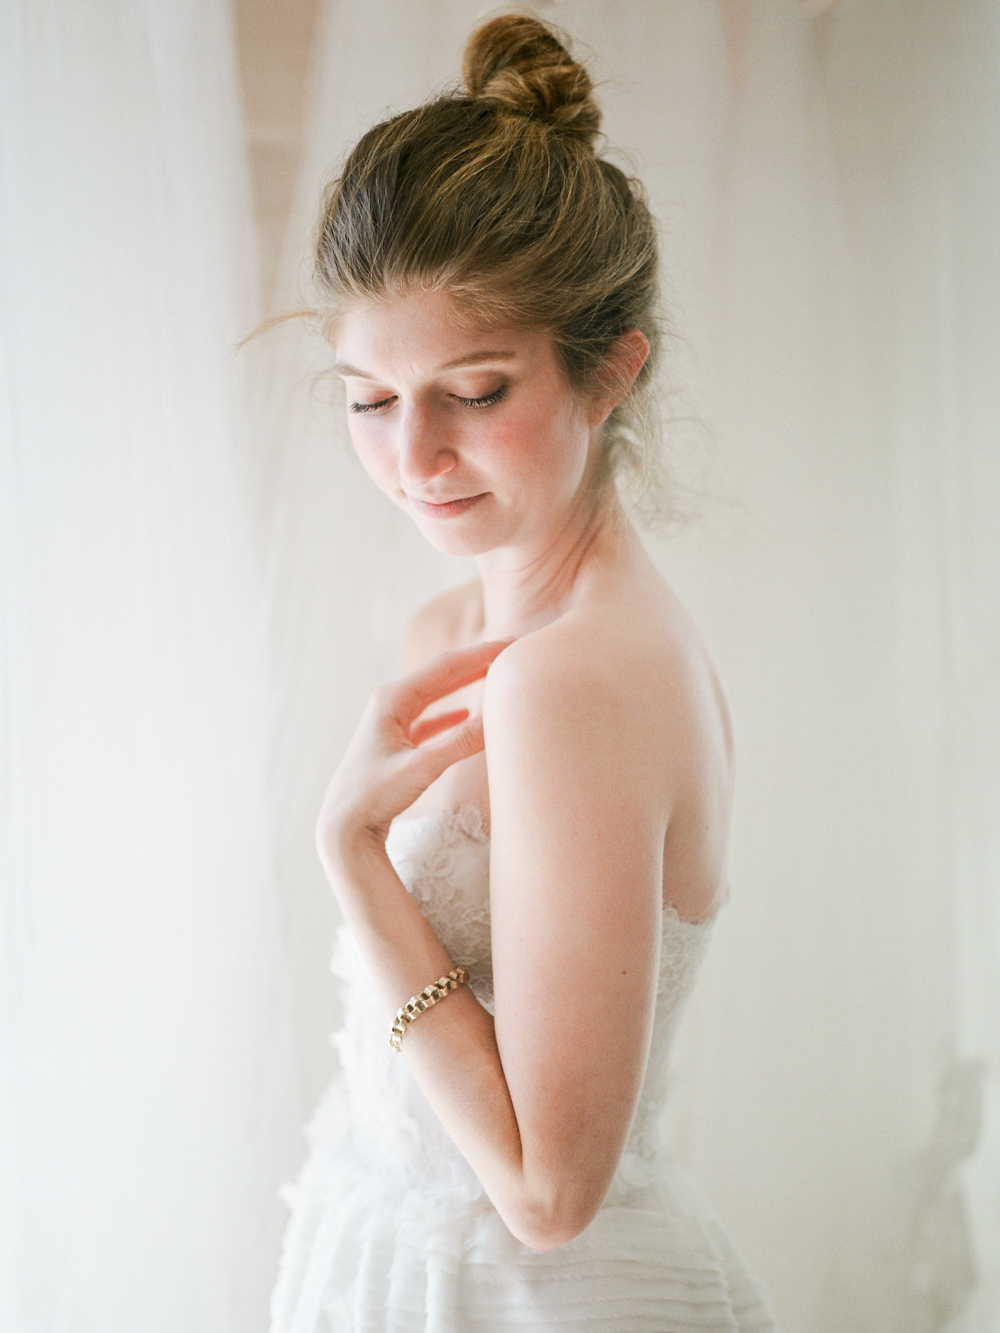 Christine Gosch_Houston wedding photographer_wedding dress styles_Houston wedding boutique_Marchesa wedding dress_ Tara Lauren bridal wedding dress_Alexandra Grecco-13.jpg